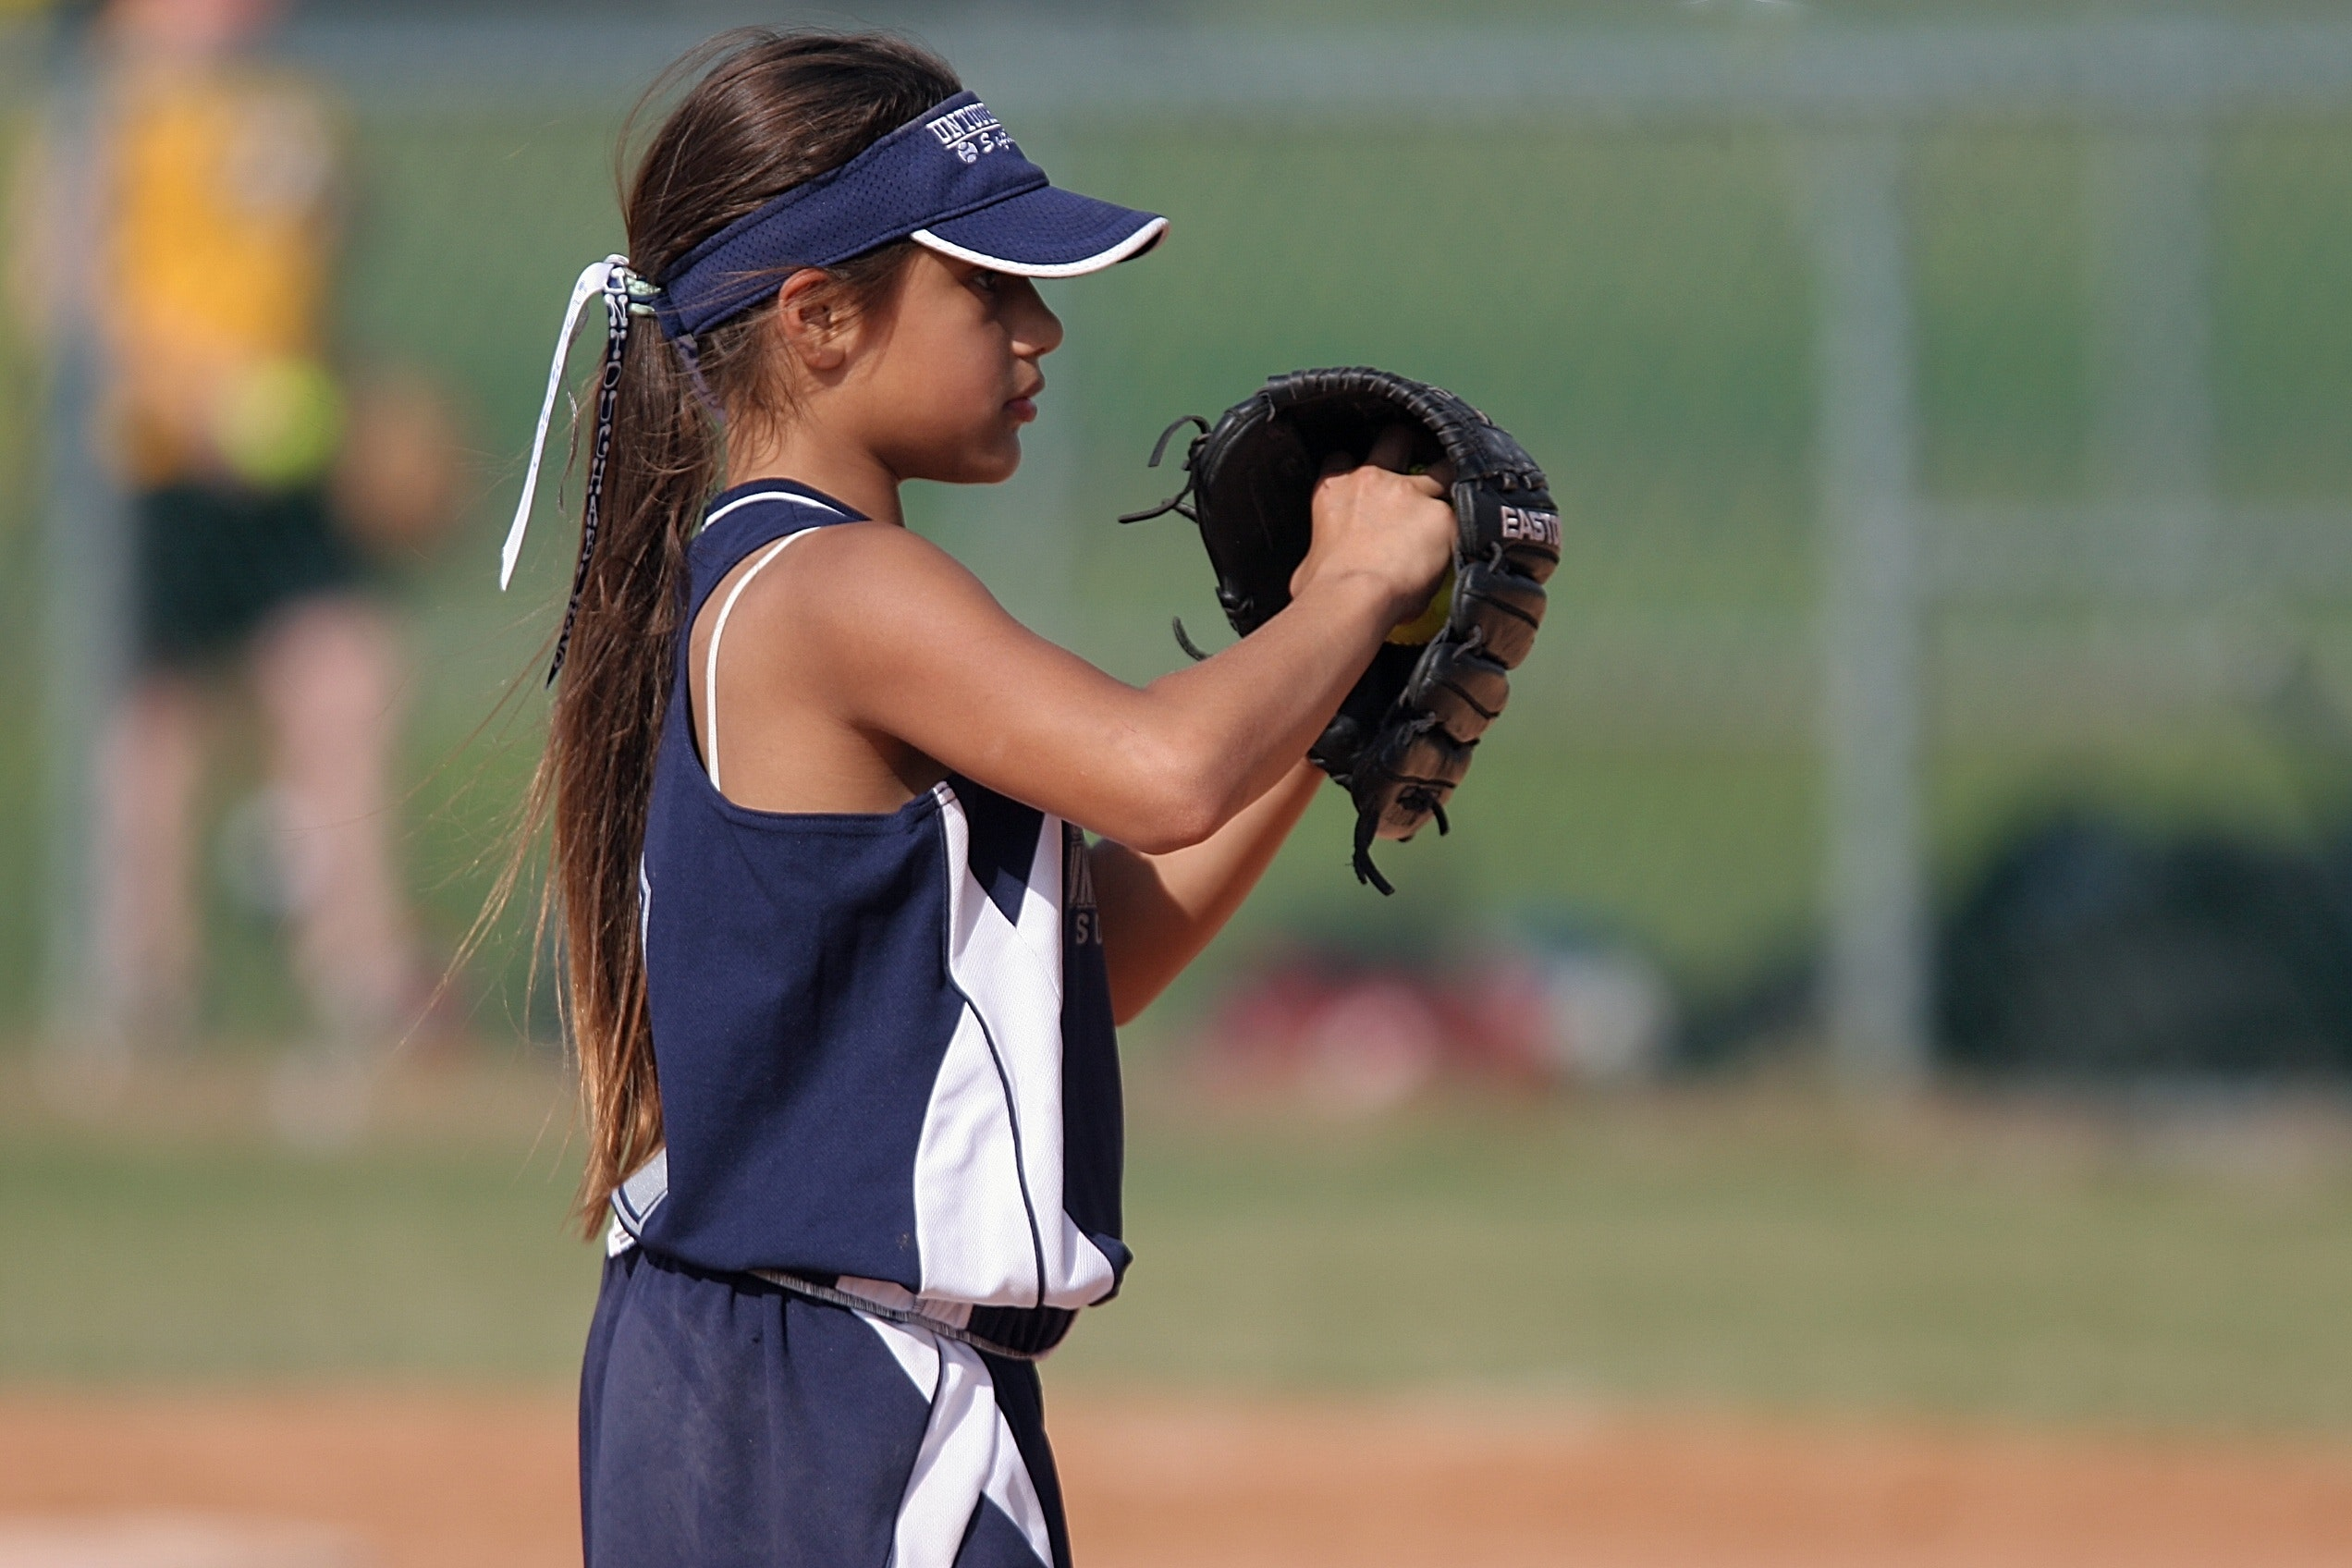 Why Sports Are a Vital Part of Our Child's Education